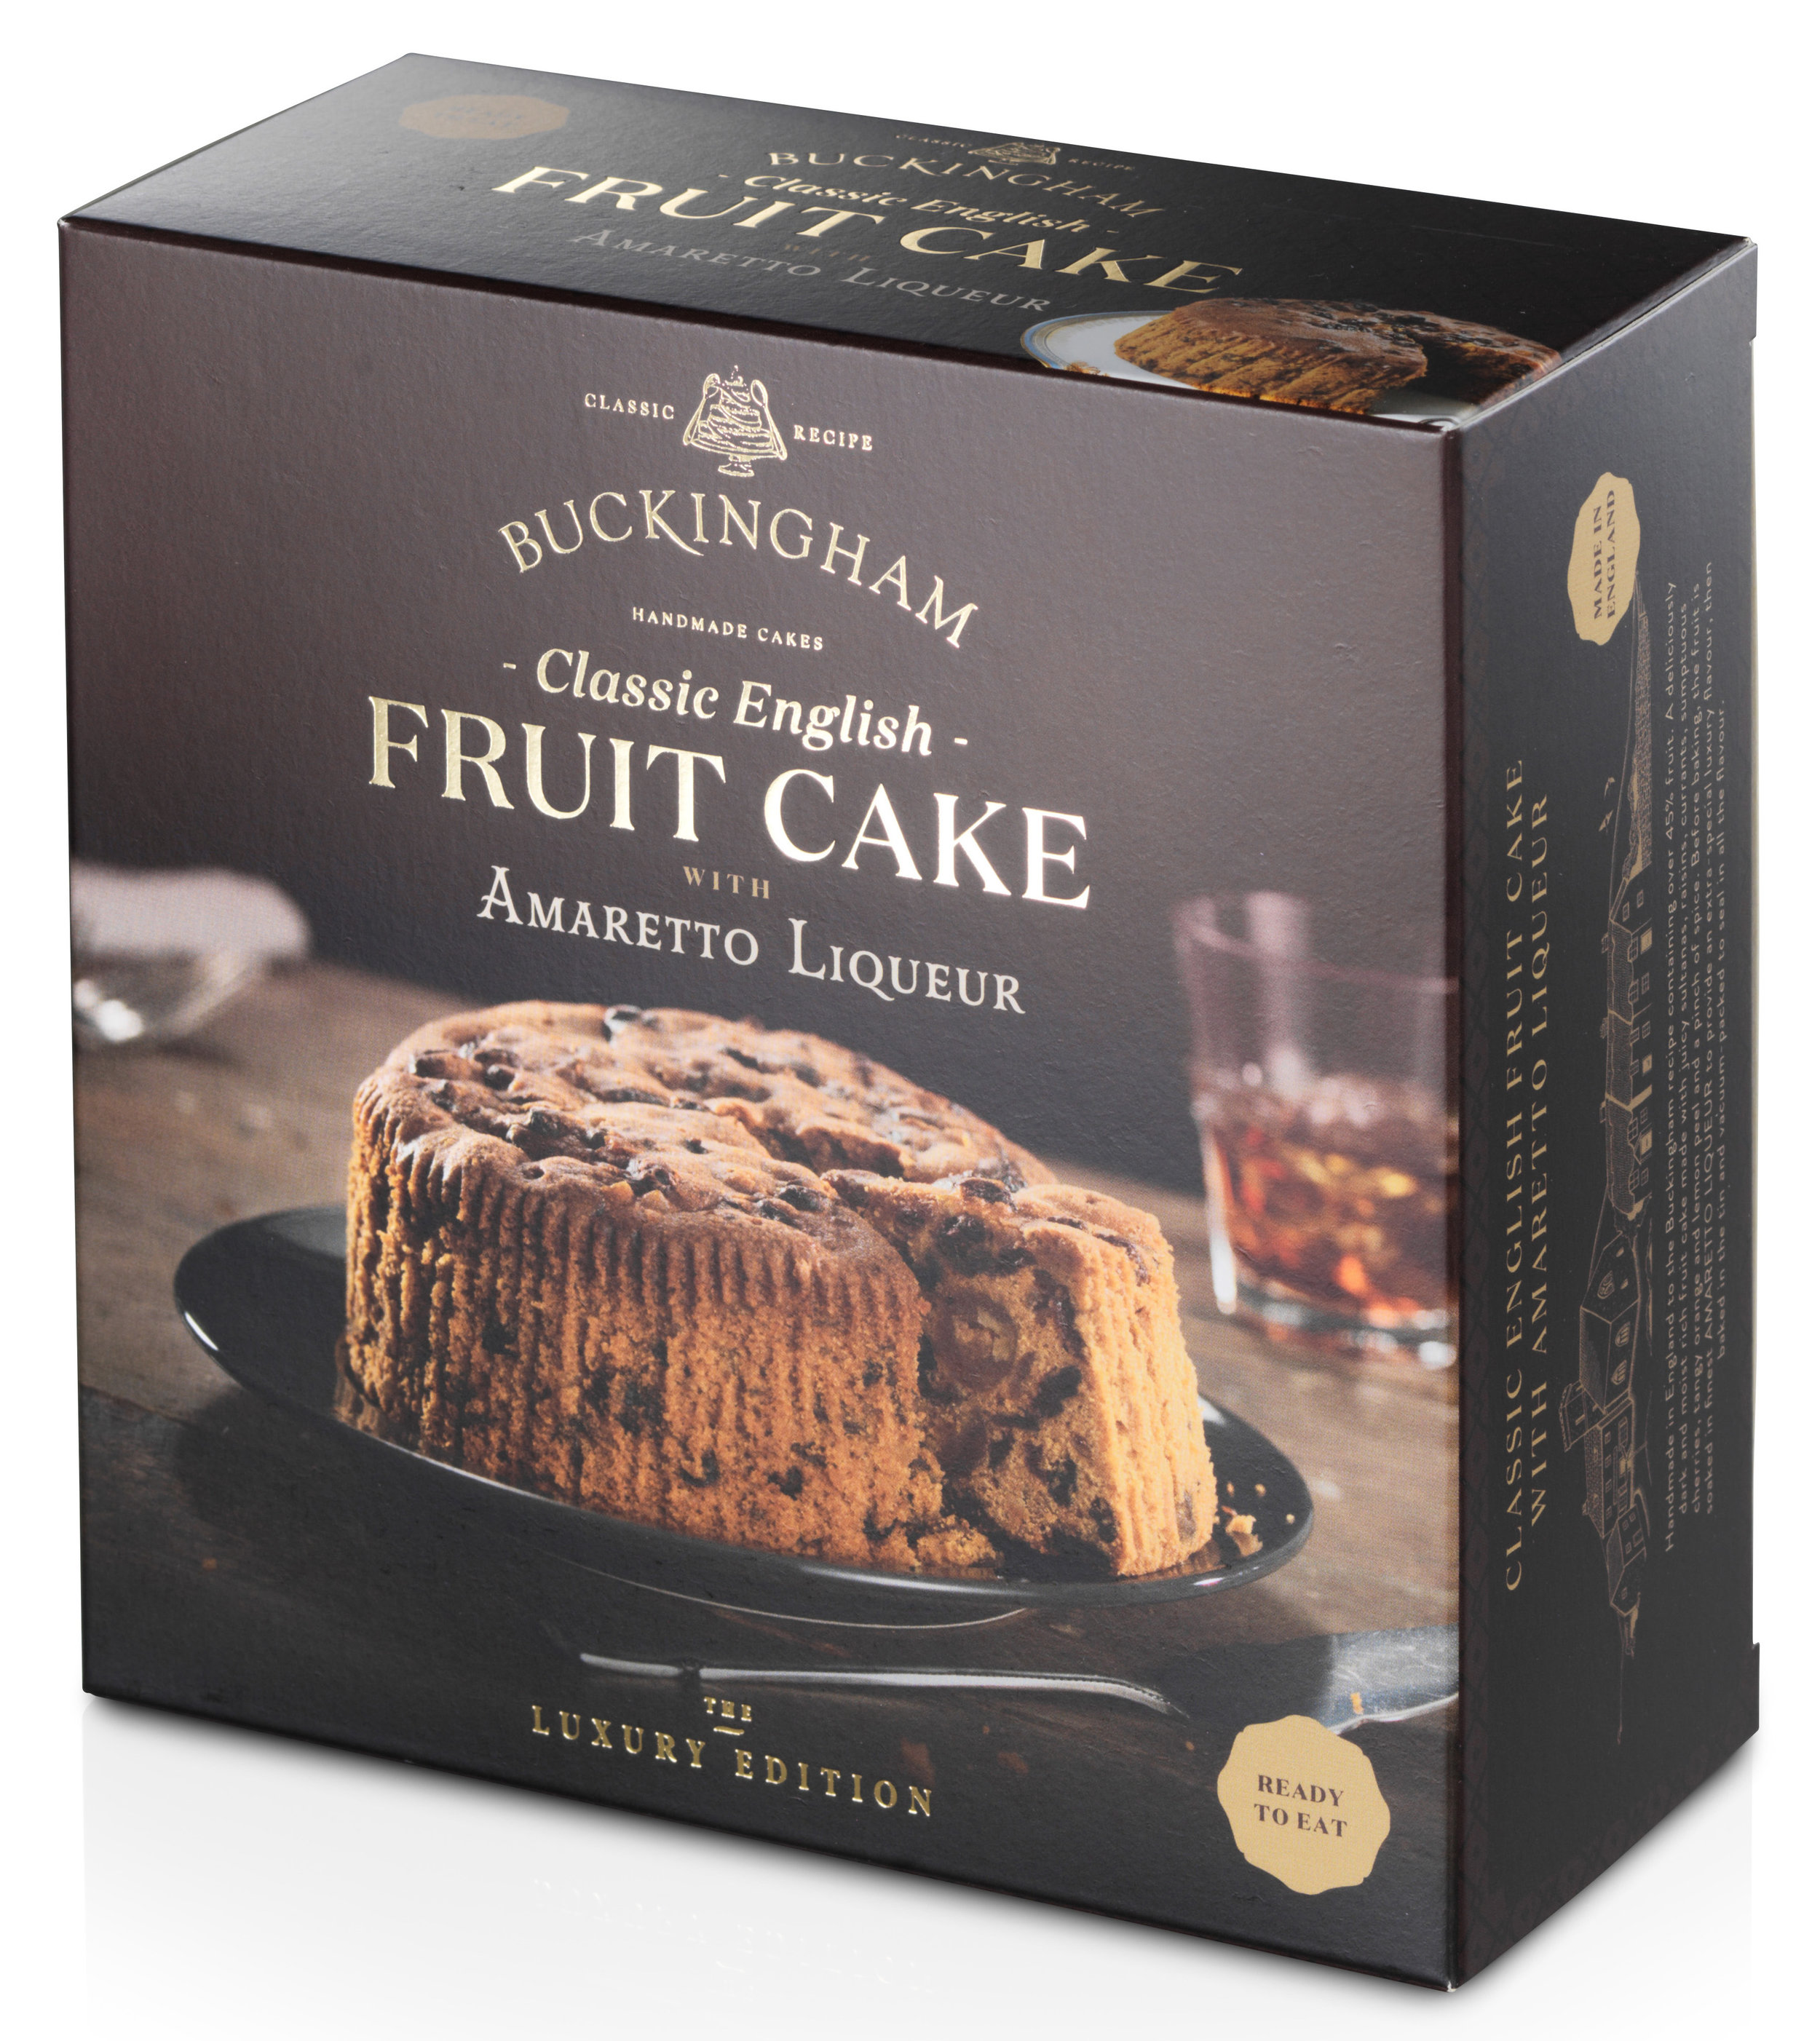 - Classic English Fruit Cake flavoured withAmaretto LiqueurPackaging: Vacuum-sealed tin with ring-pull, packed inside elegant gift box.Pack Sizes: 6 x 280g, 6 x 700gStorage: AmbientShelf-life: 24 monthsRecipe: Pure butter. Over 45% fruit.No artificial colours or flavours.